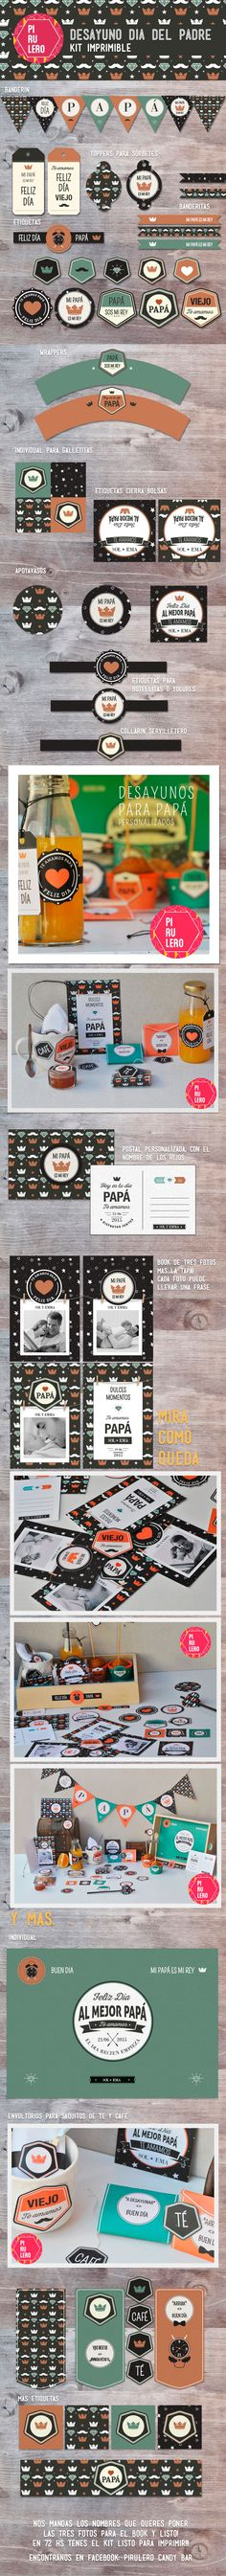 Kit imprimible desayuno dia del padre #fathersDay #papa #diadelPadre #Desayuno… Hobbies And Crafts, Diy And Crafts, Ideas Aniversario, Thanks Card, Dad Day, Silhouette Portrait, Party In A Box, Vintage Tags, Project Life